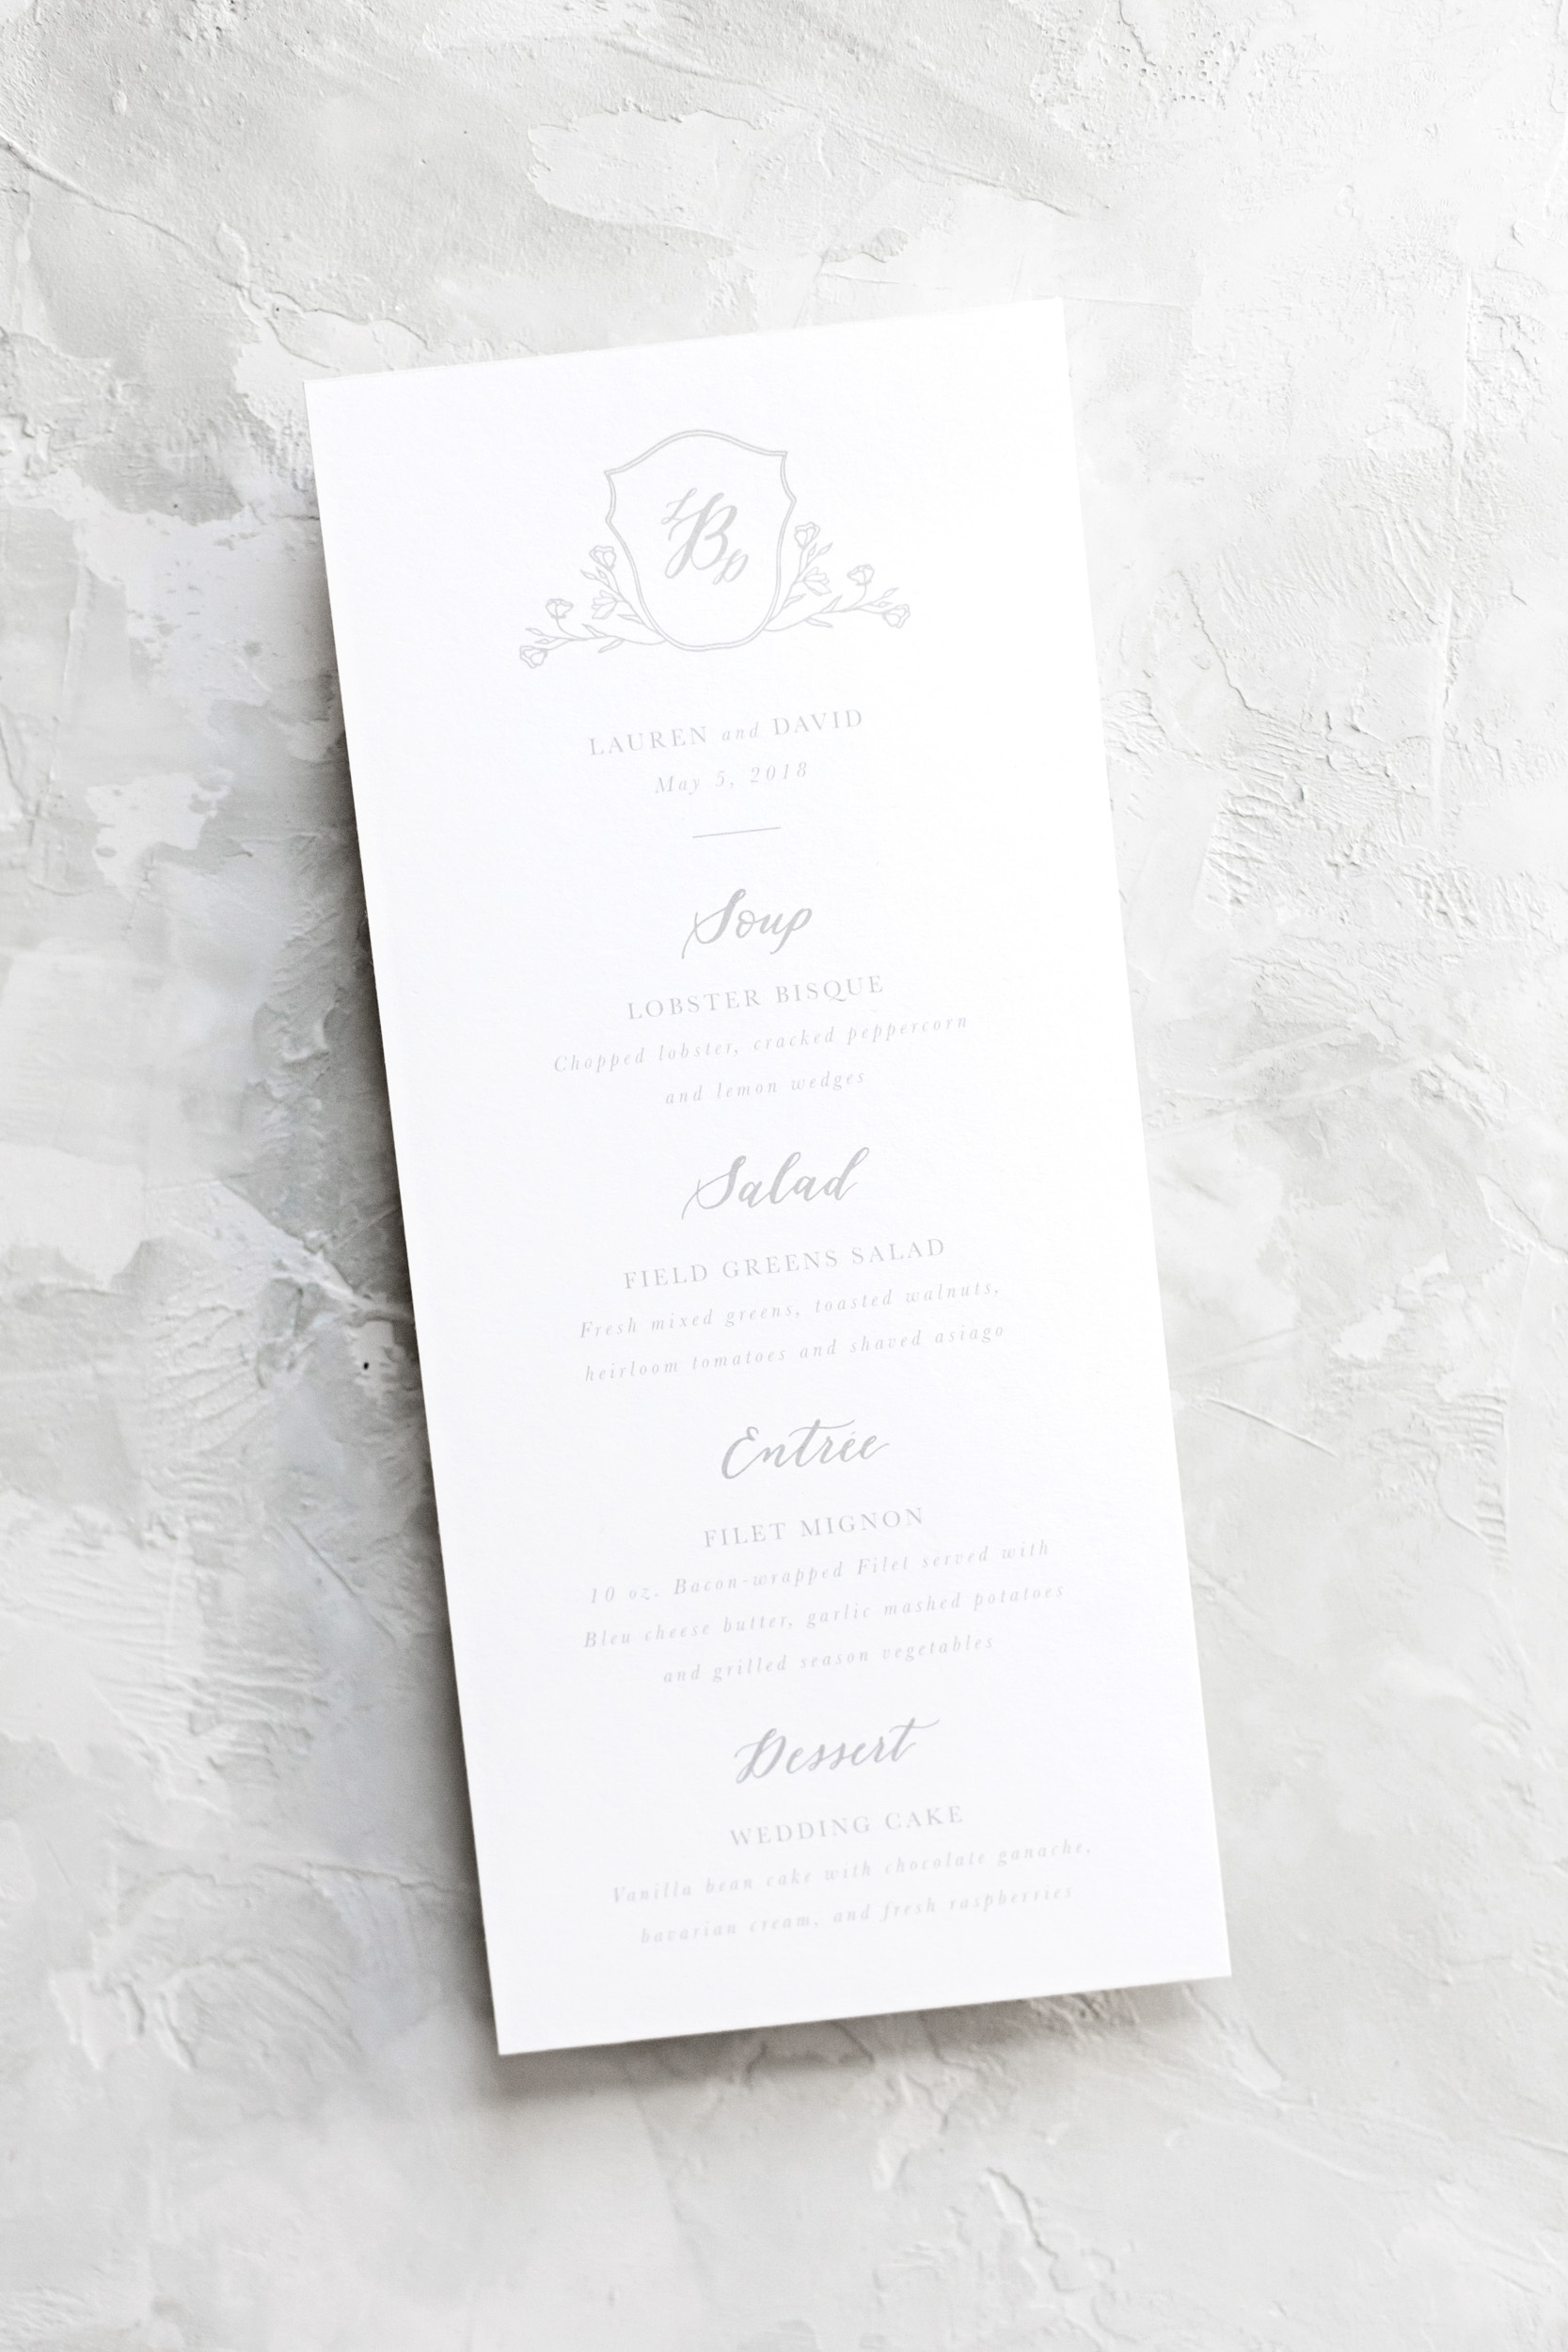 Dreams and Nostalgia_Wedding Menu.jpg